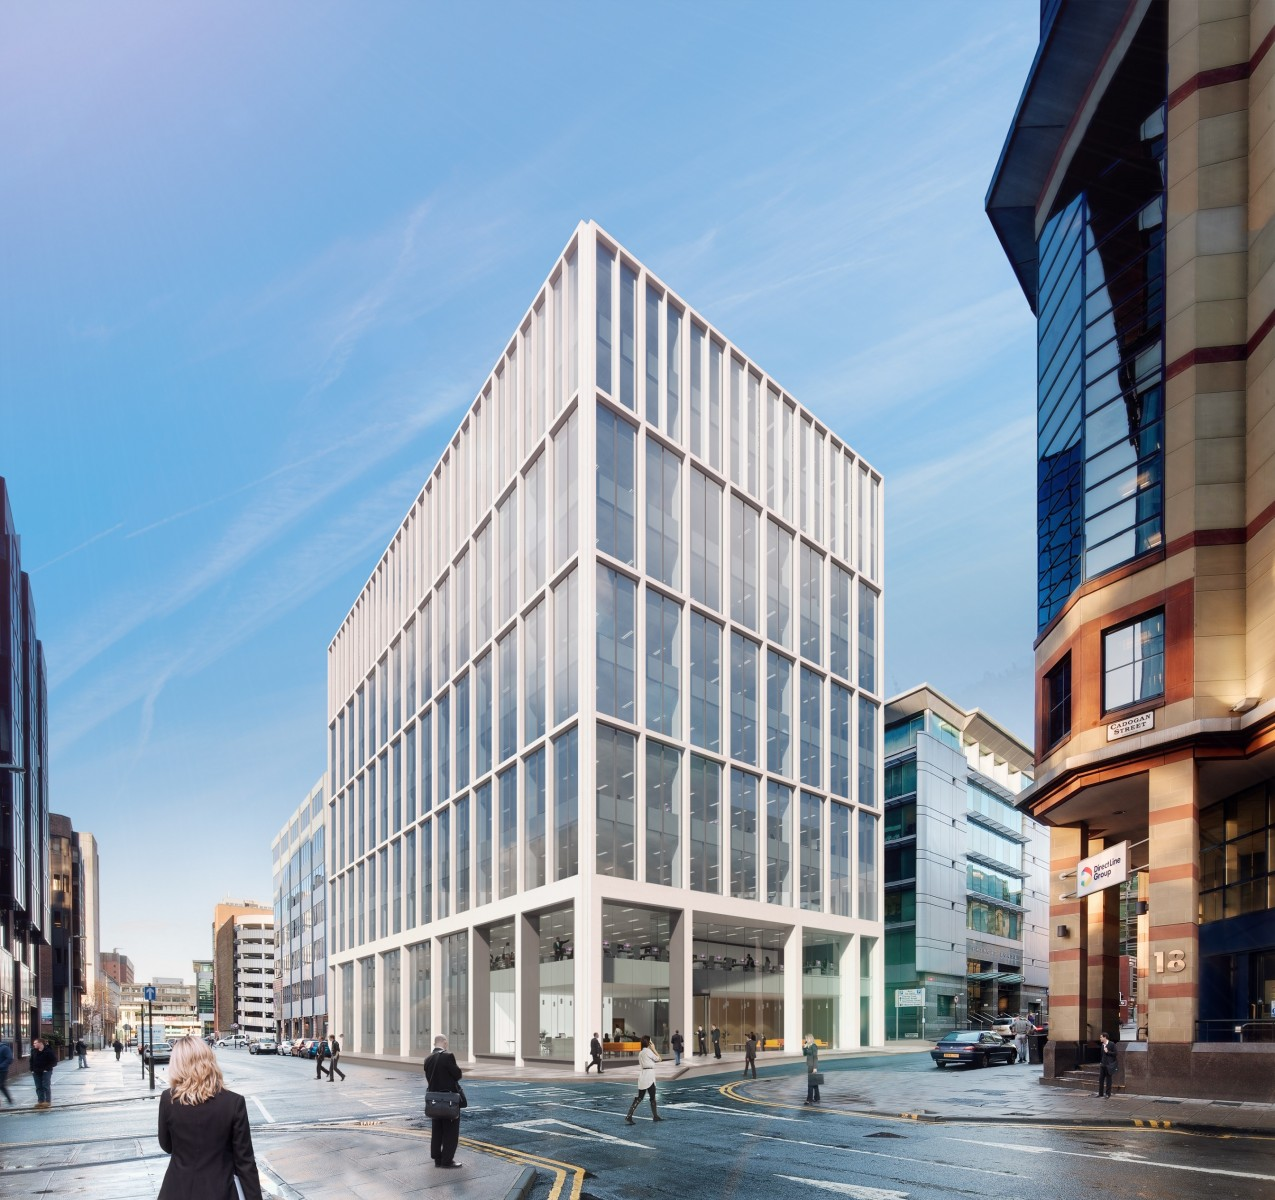 Speculative Office Drought Ends With Glasgow Go-ahead